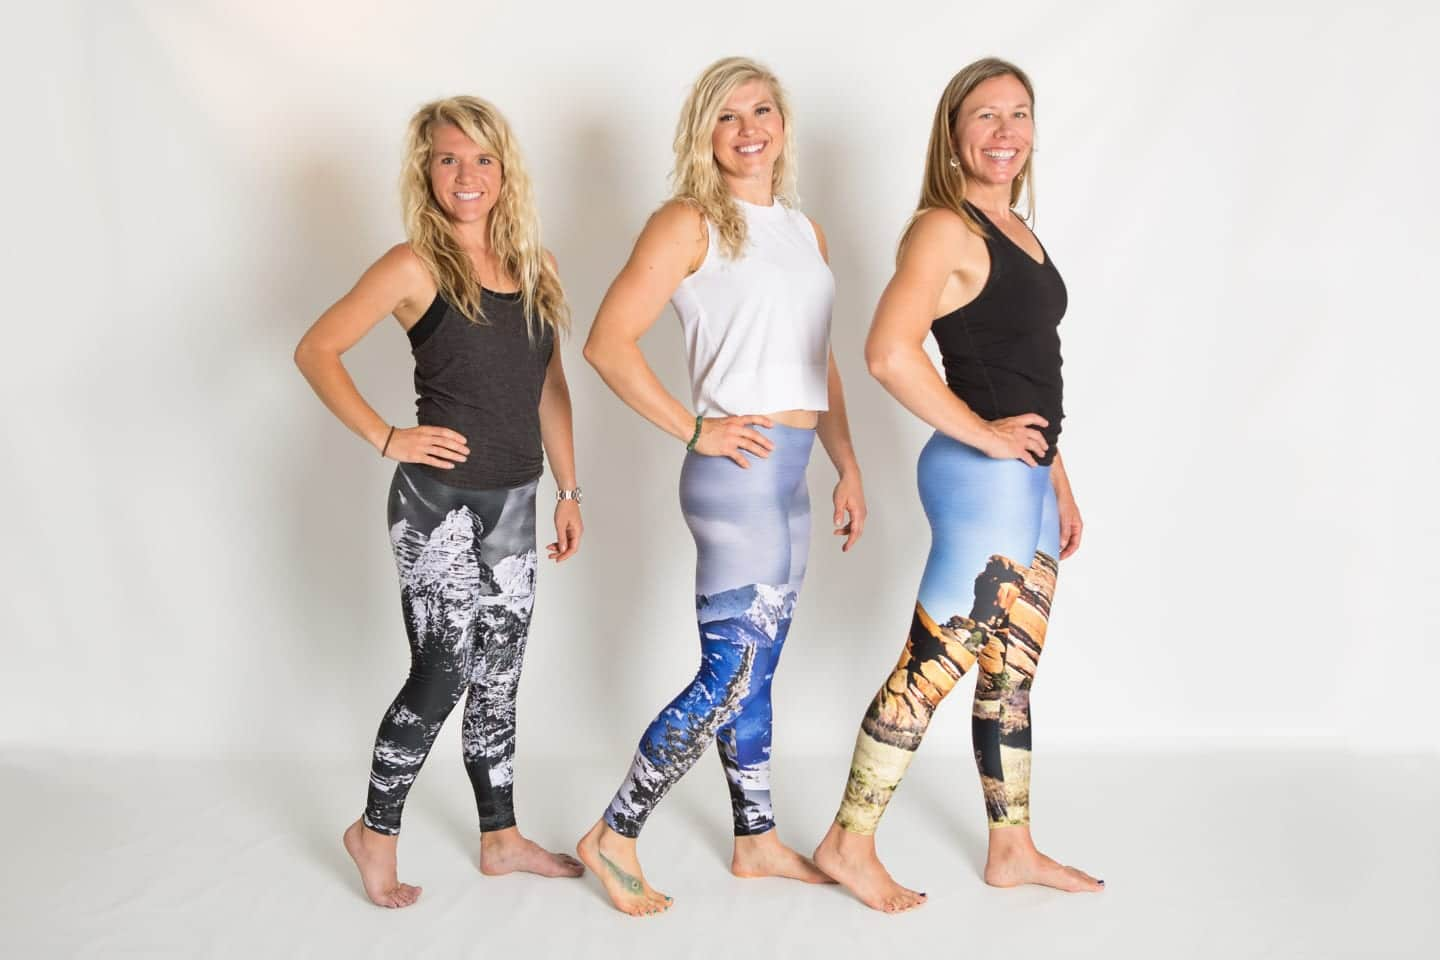 Mellivora Leggings Colorado Women